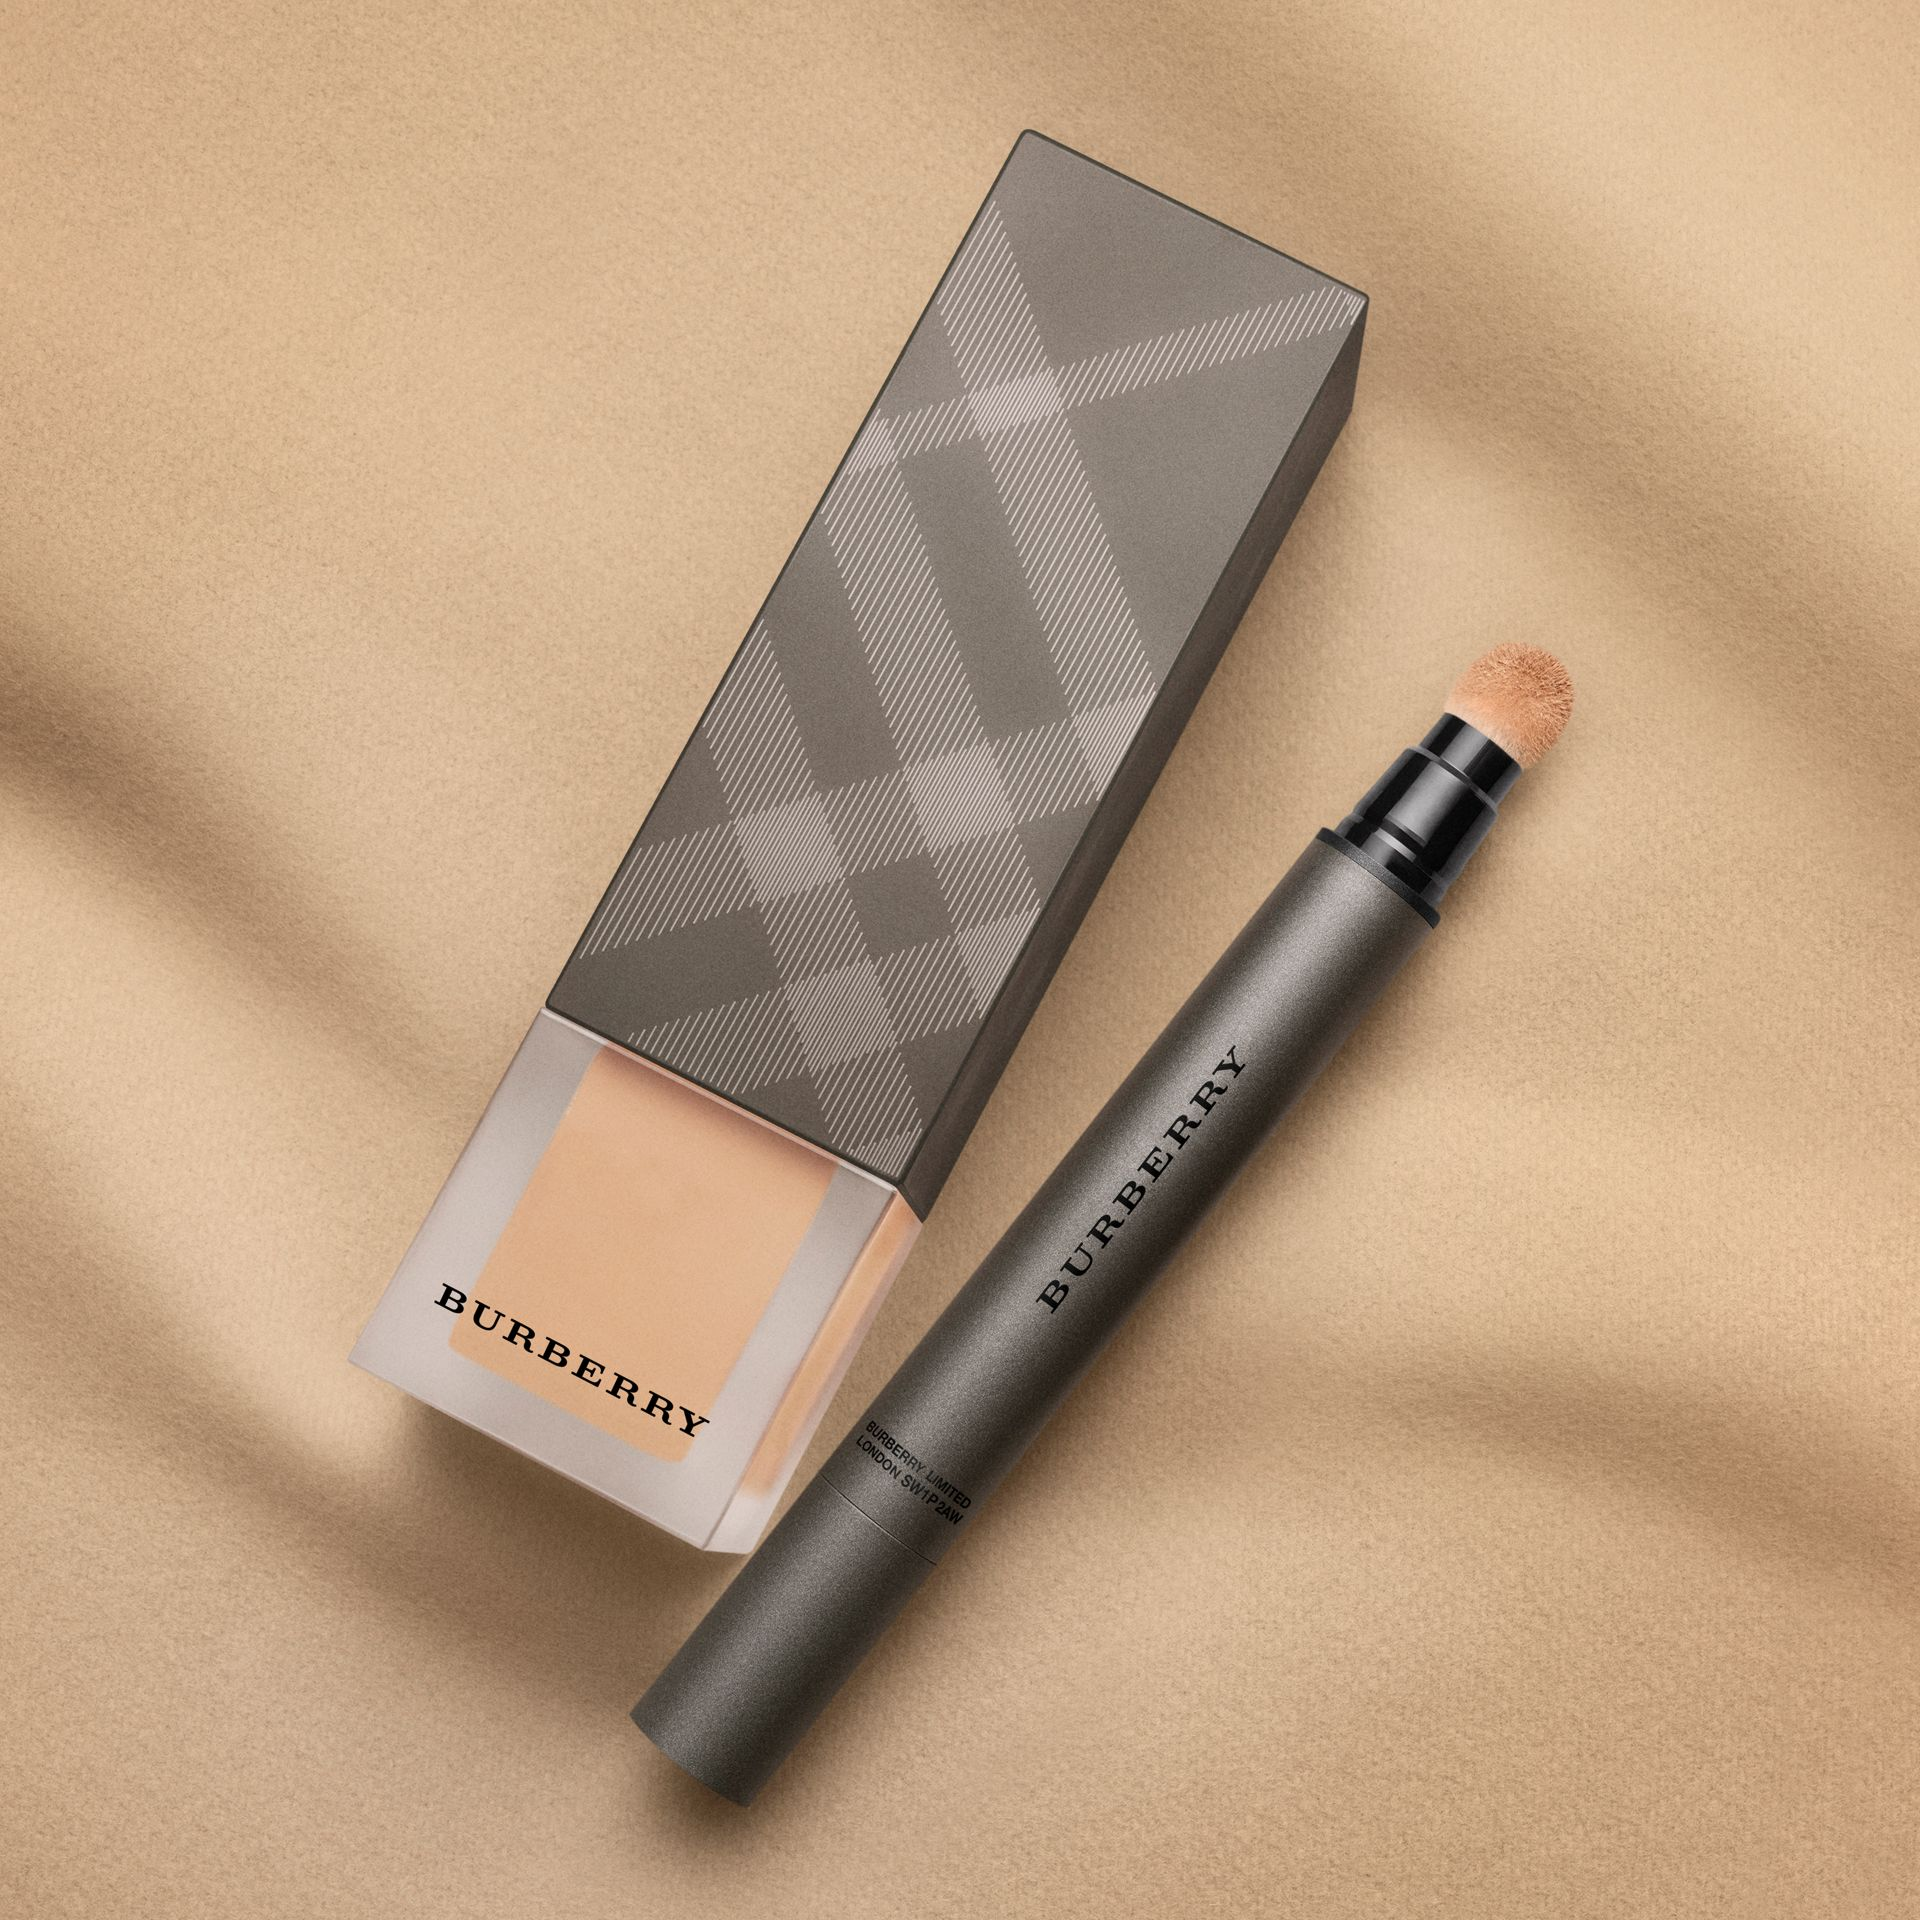 Chestnut 60 Burberry Cashmere Sunscreen SPF 15 – Chestnut No.60 - gallery image 4